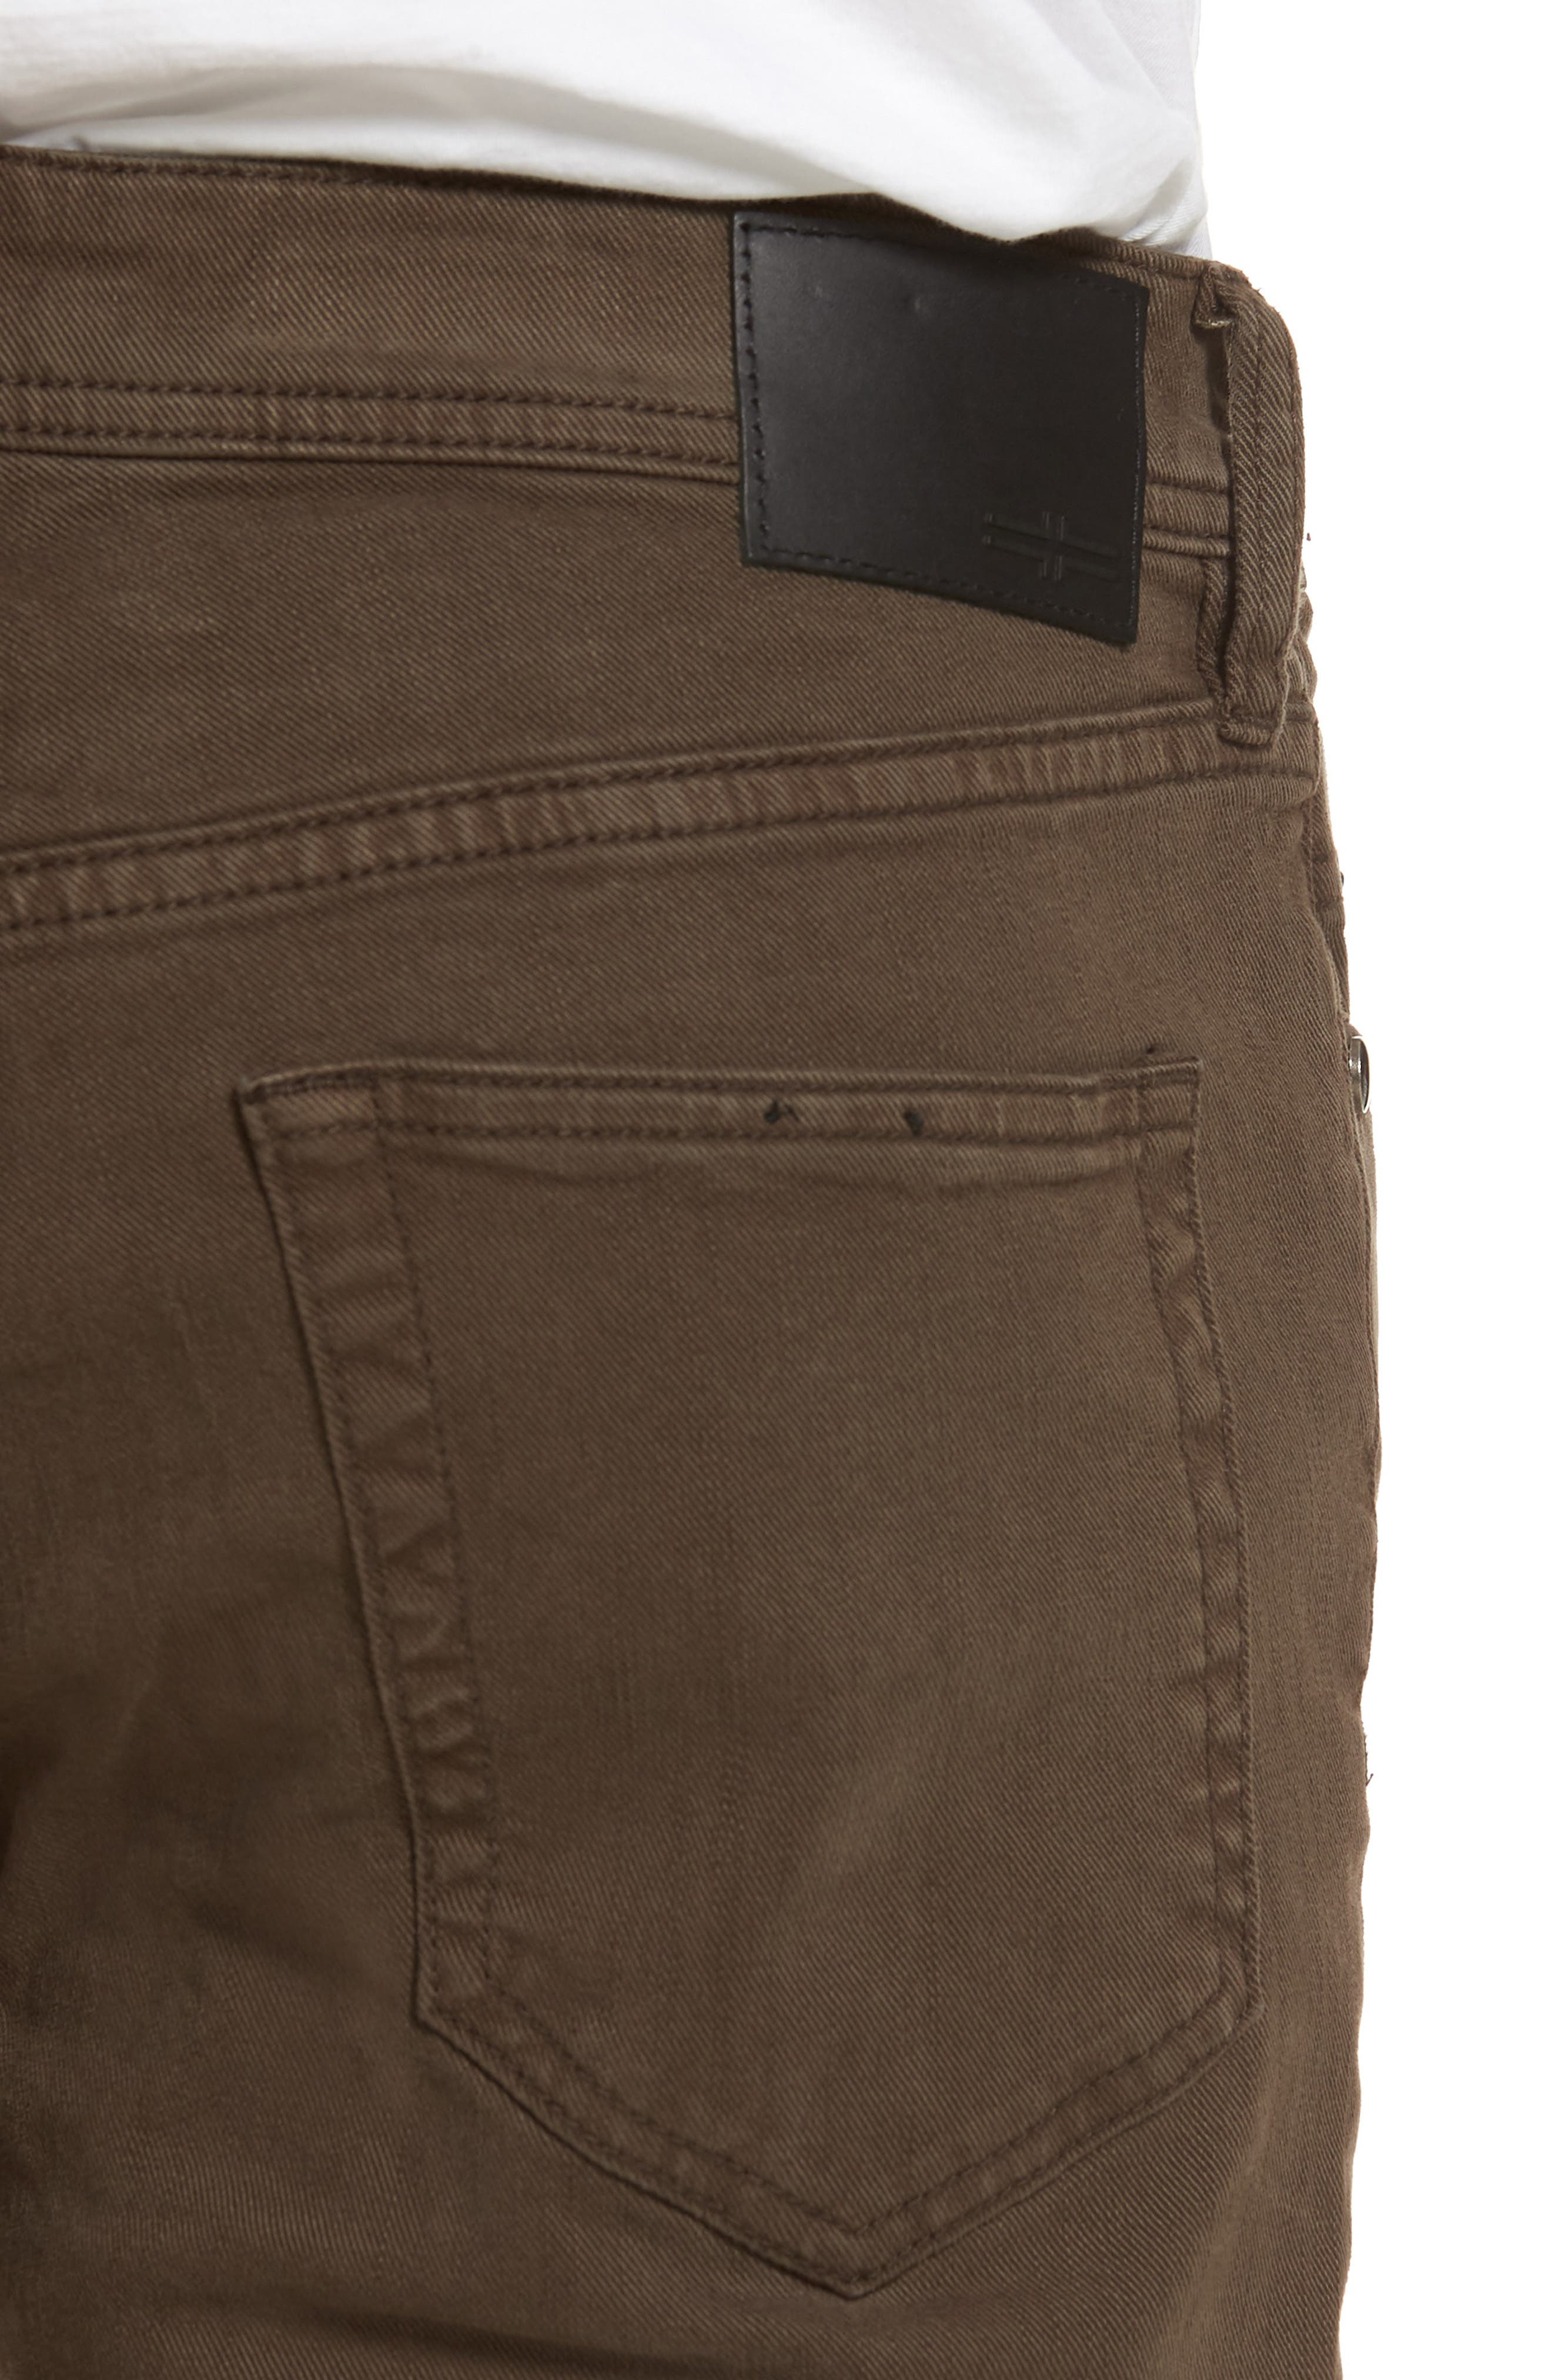 Jeans Co. Kingston Slim Straight Leg Jeans,                             Alternate thumbnail 4, color,                             TOBACCO LEAF